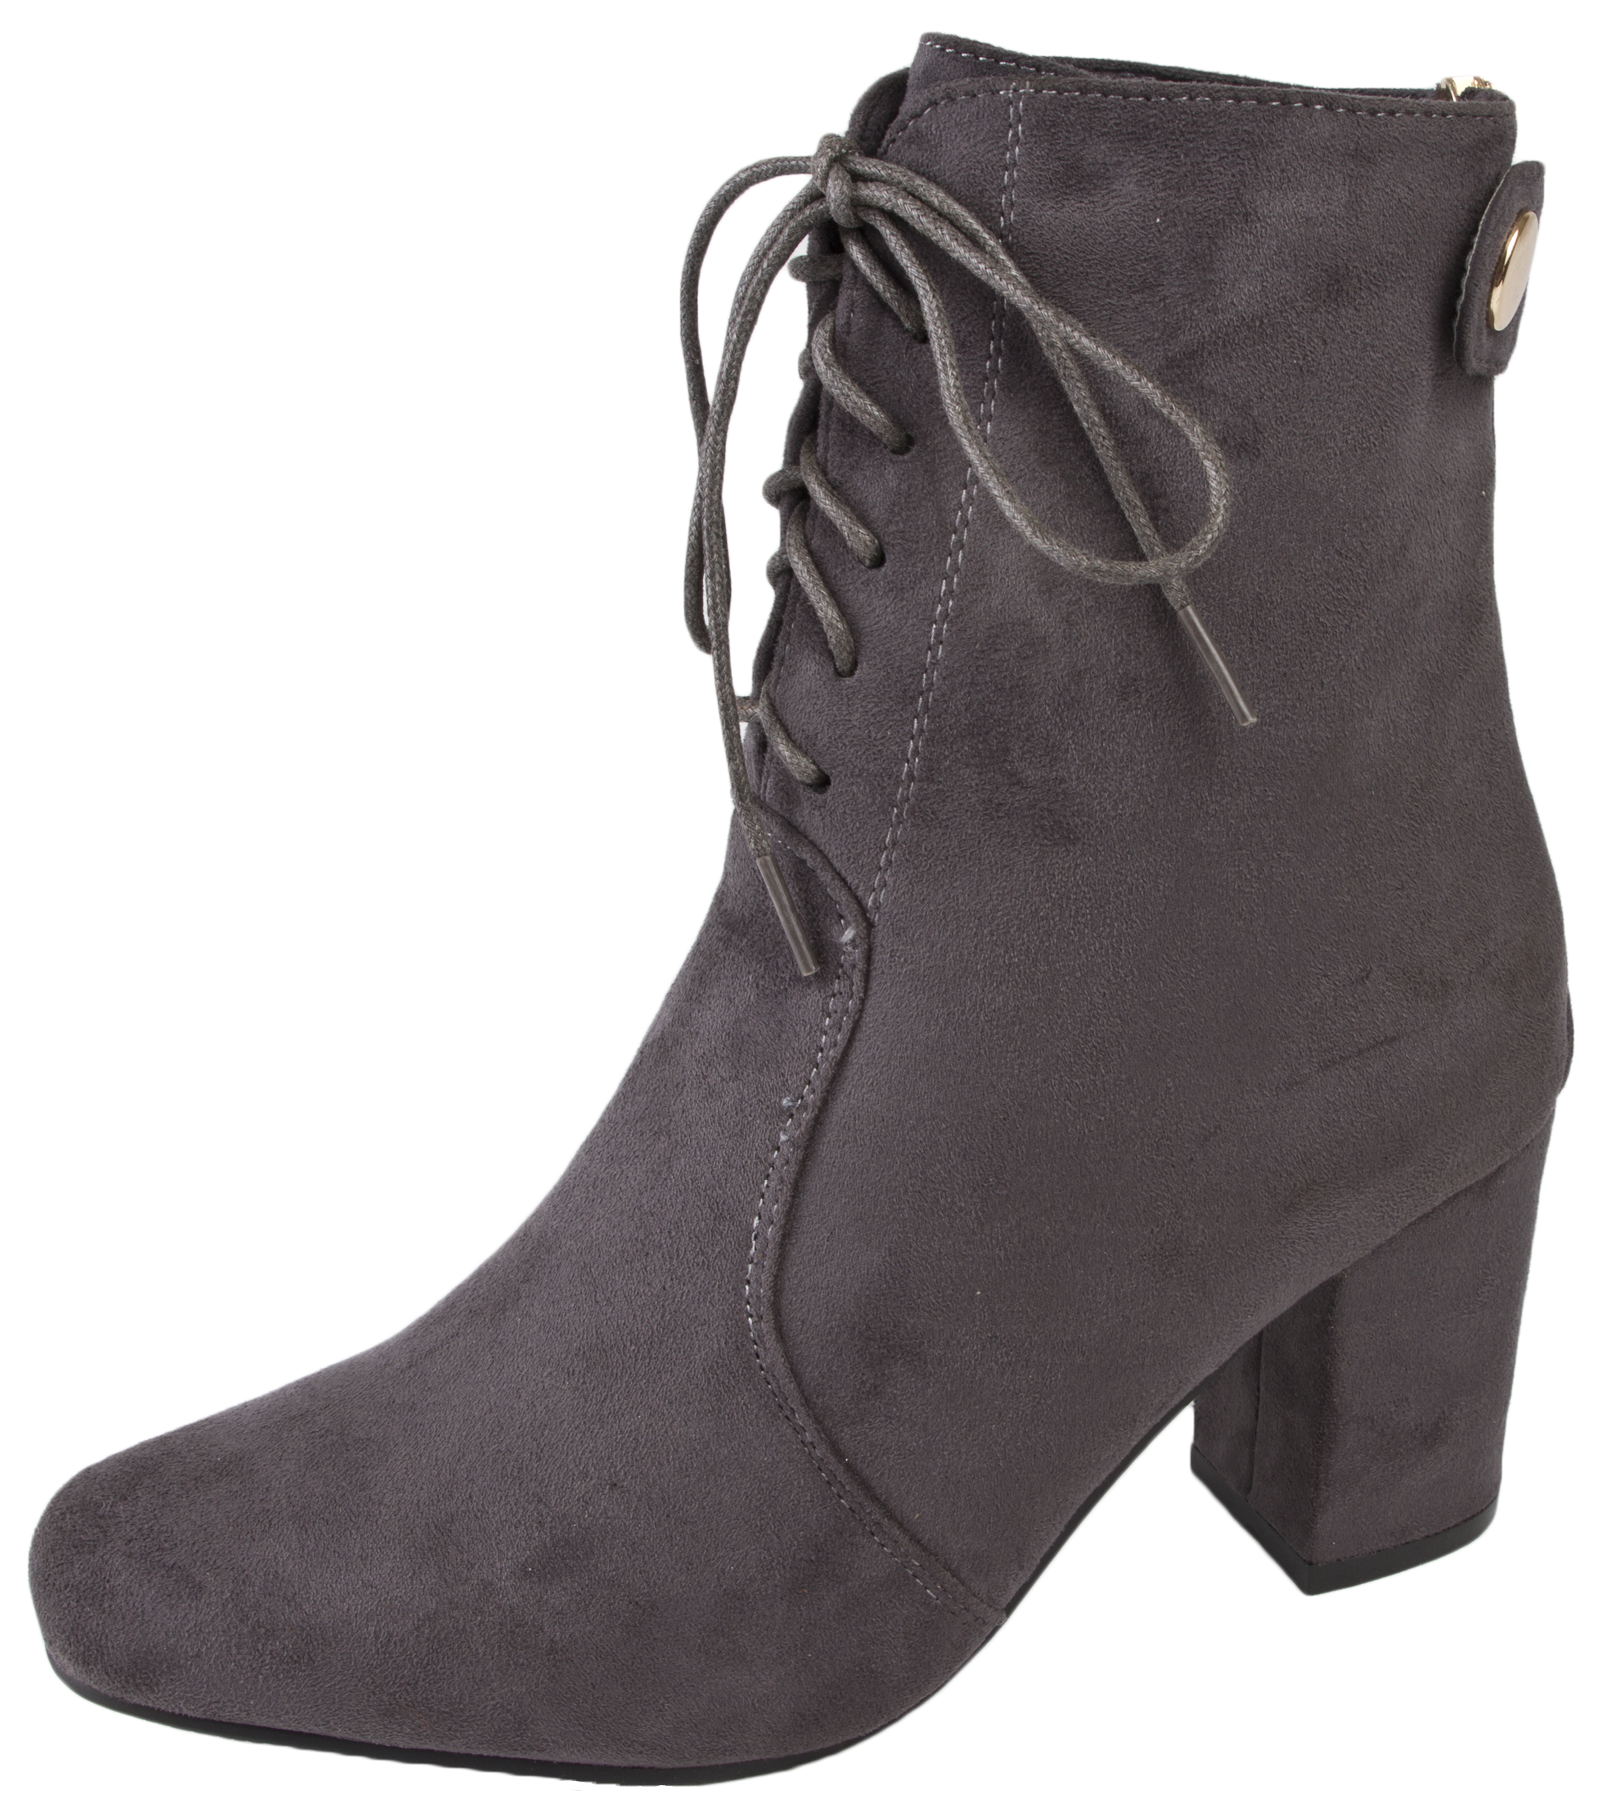 Unique Womens Chunky Block Heel Chelsea Ankle Boots Faux Suede Leather Shoes Girls Size | EBay